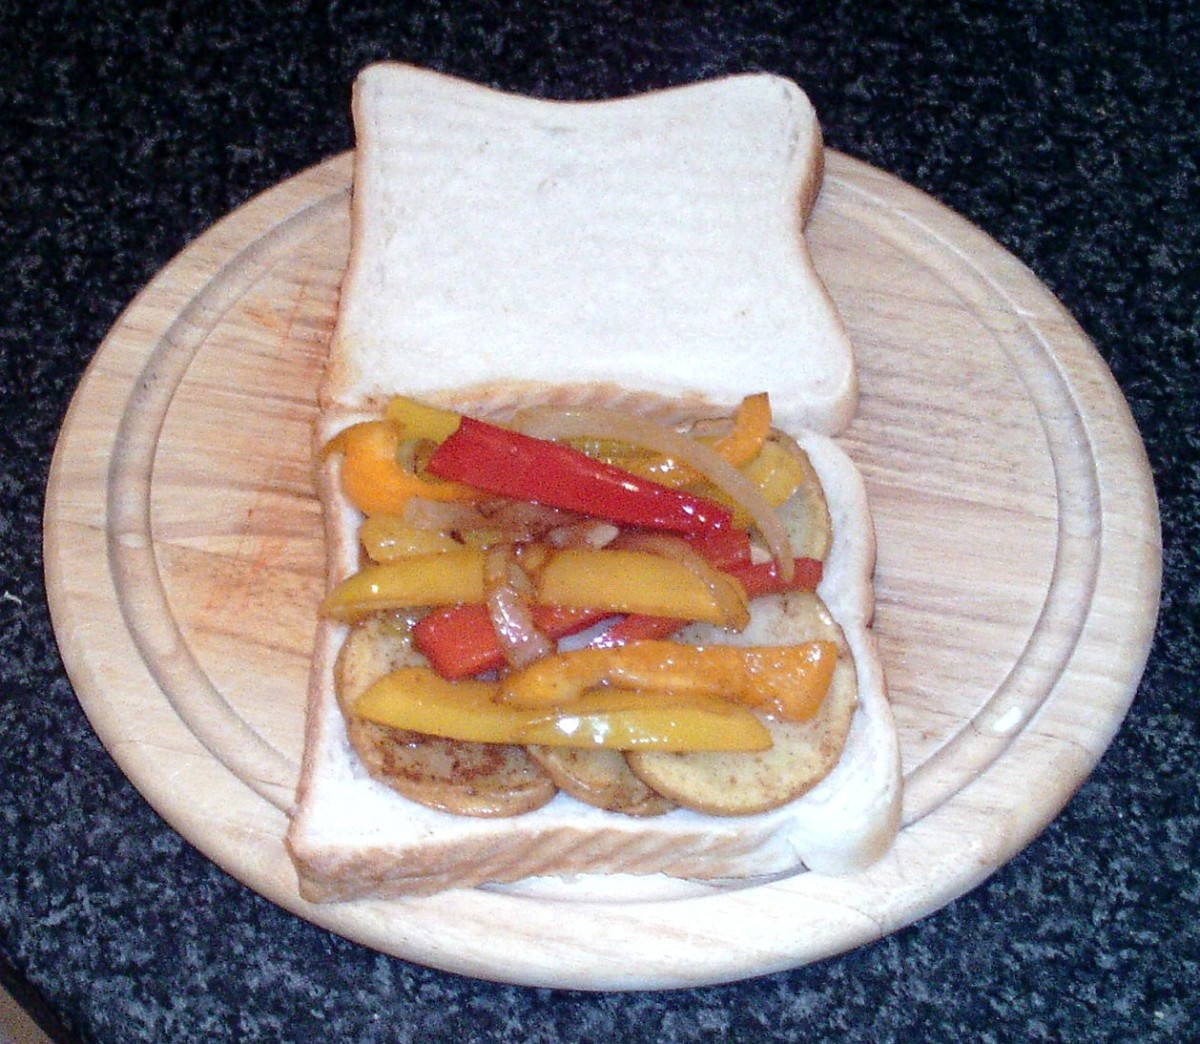 Peppers and onion are arranged on top of potato slices